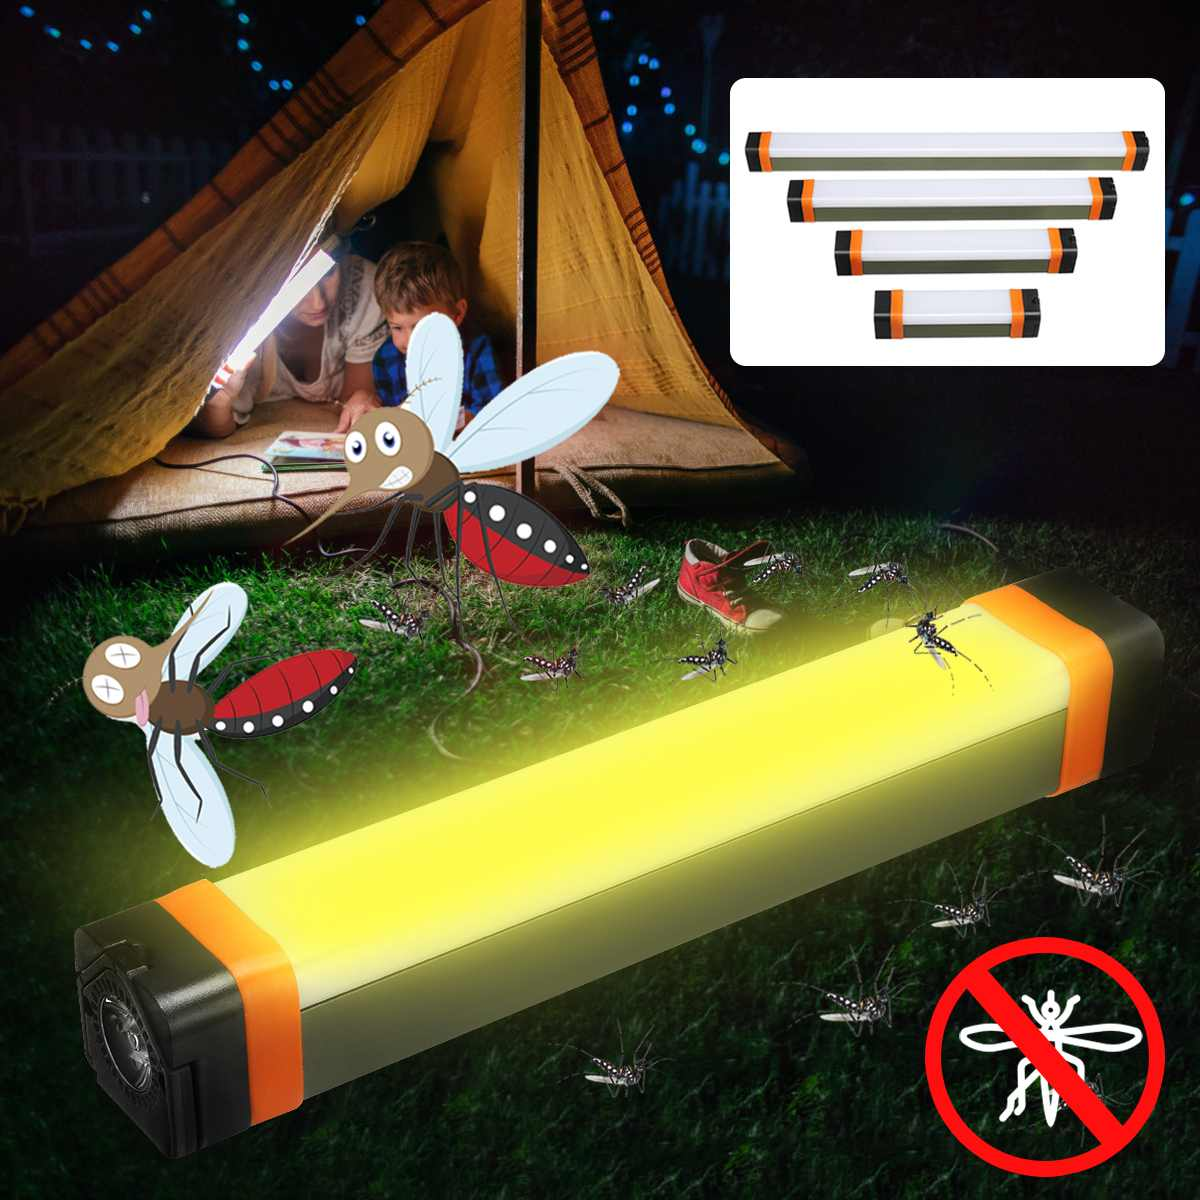 2W/3.5W/5.5W/7.5W USB Rechargeable Camping Light Mosquito Repellent LED Tent Light Mosquito Bulb Bivvy Lamp Torch 3 Modes